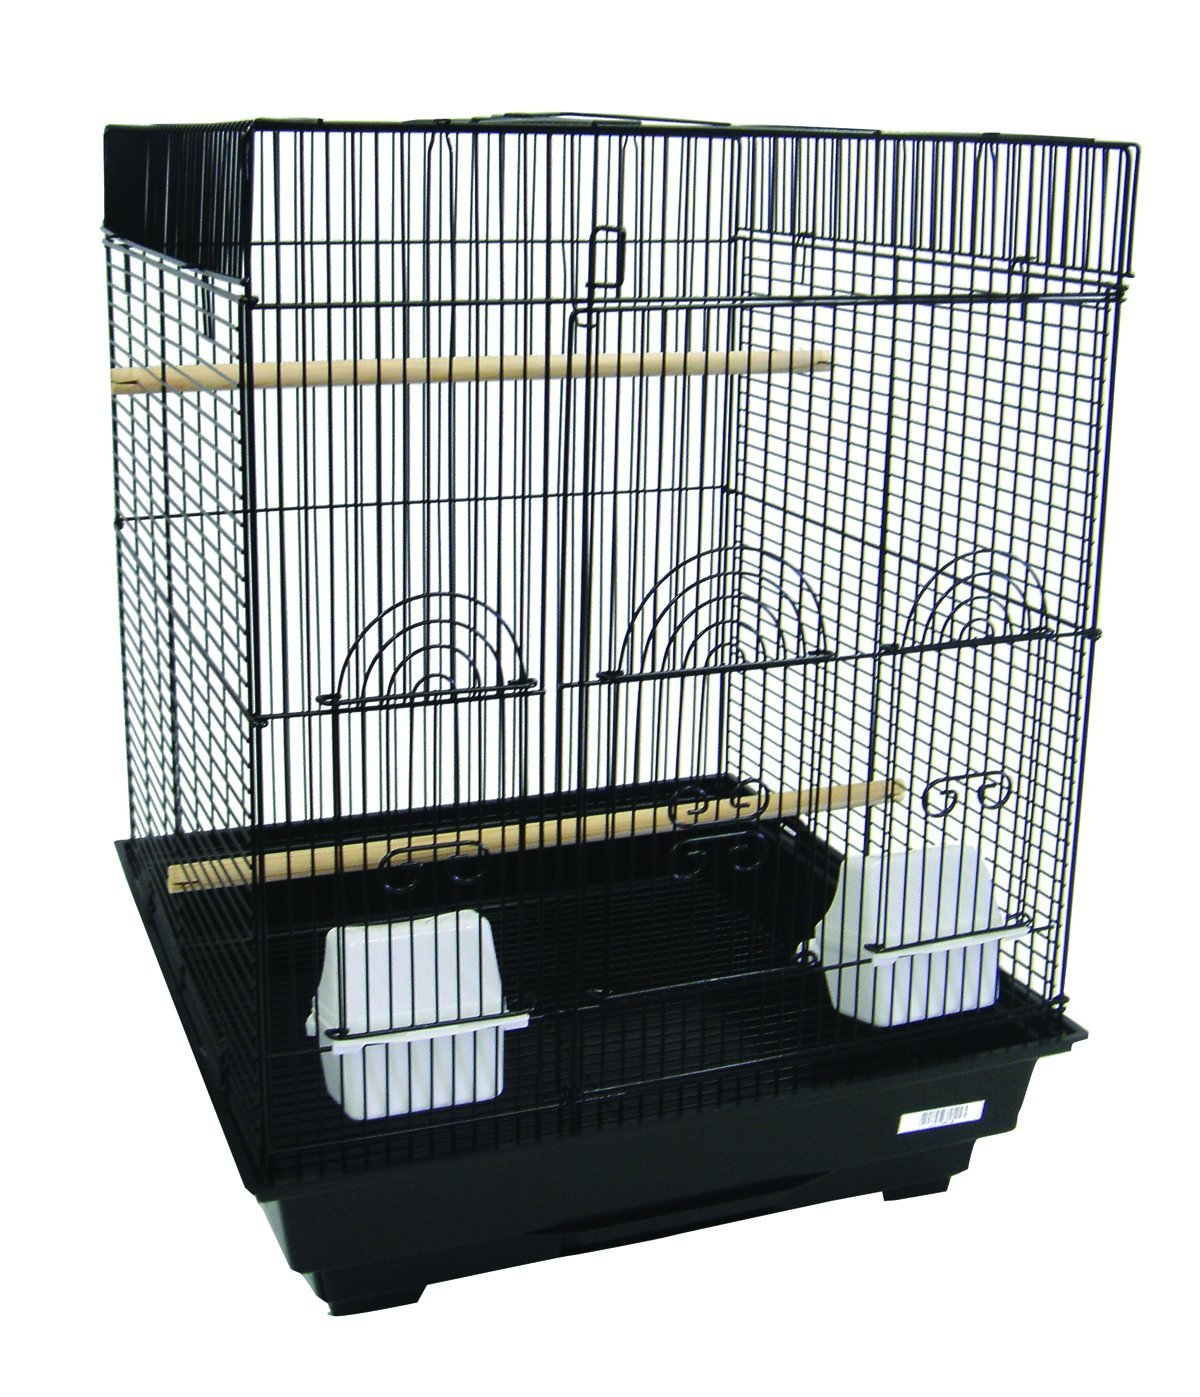 YML A5924 3/8-Inch Bar Spacing Flat Top Small Bird Cage, 18-Inch by 18-Inch, Black A5924BLK